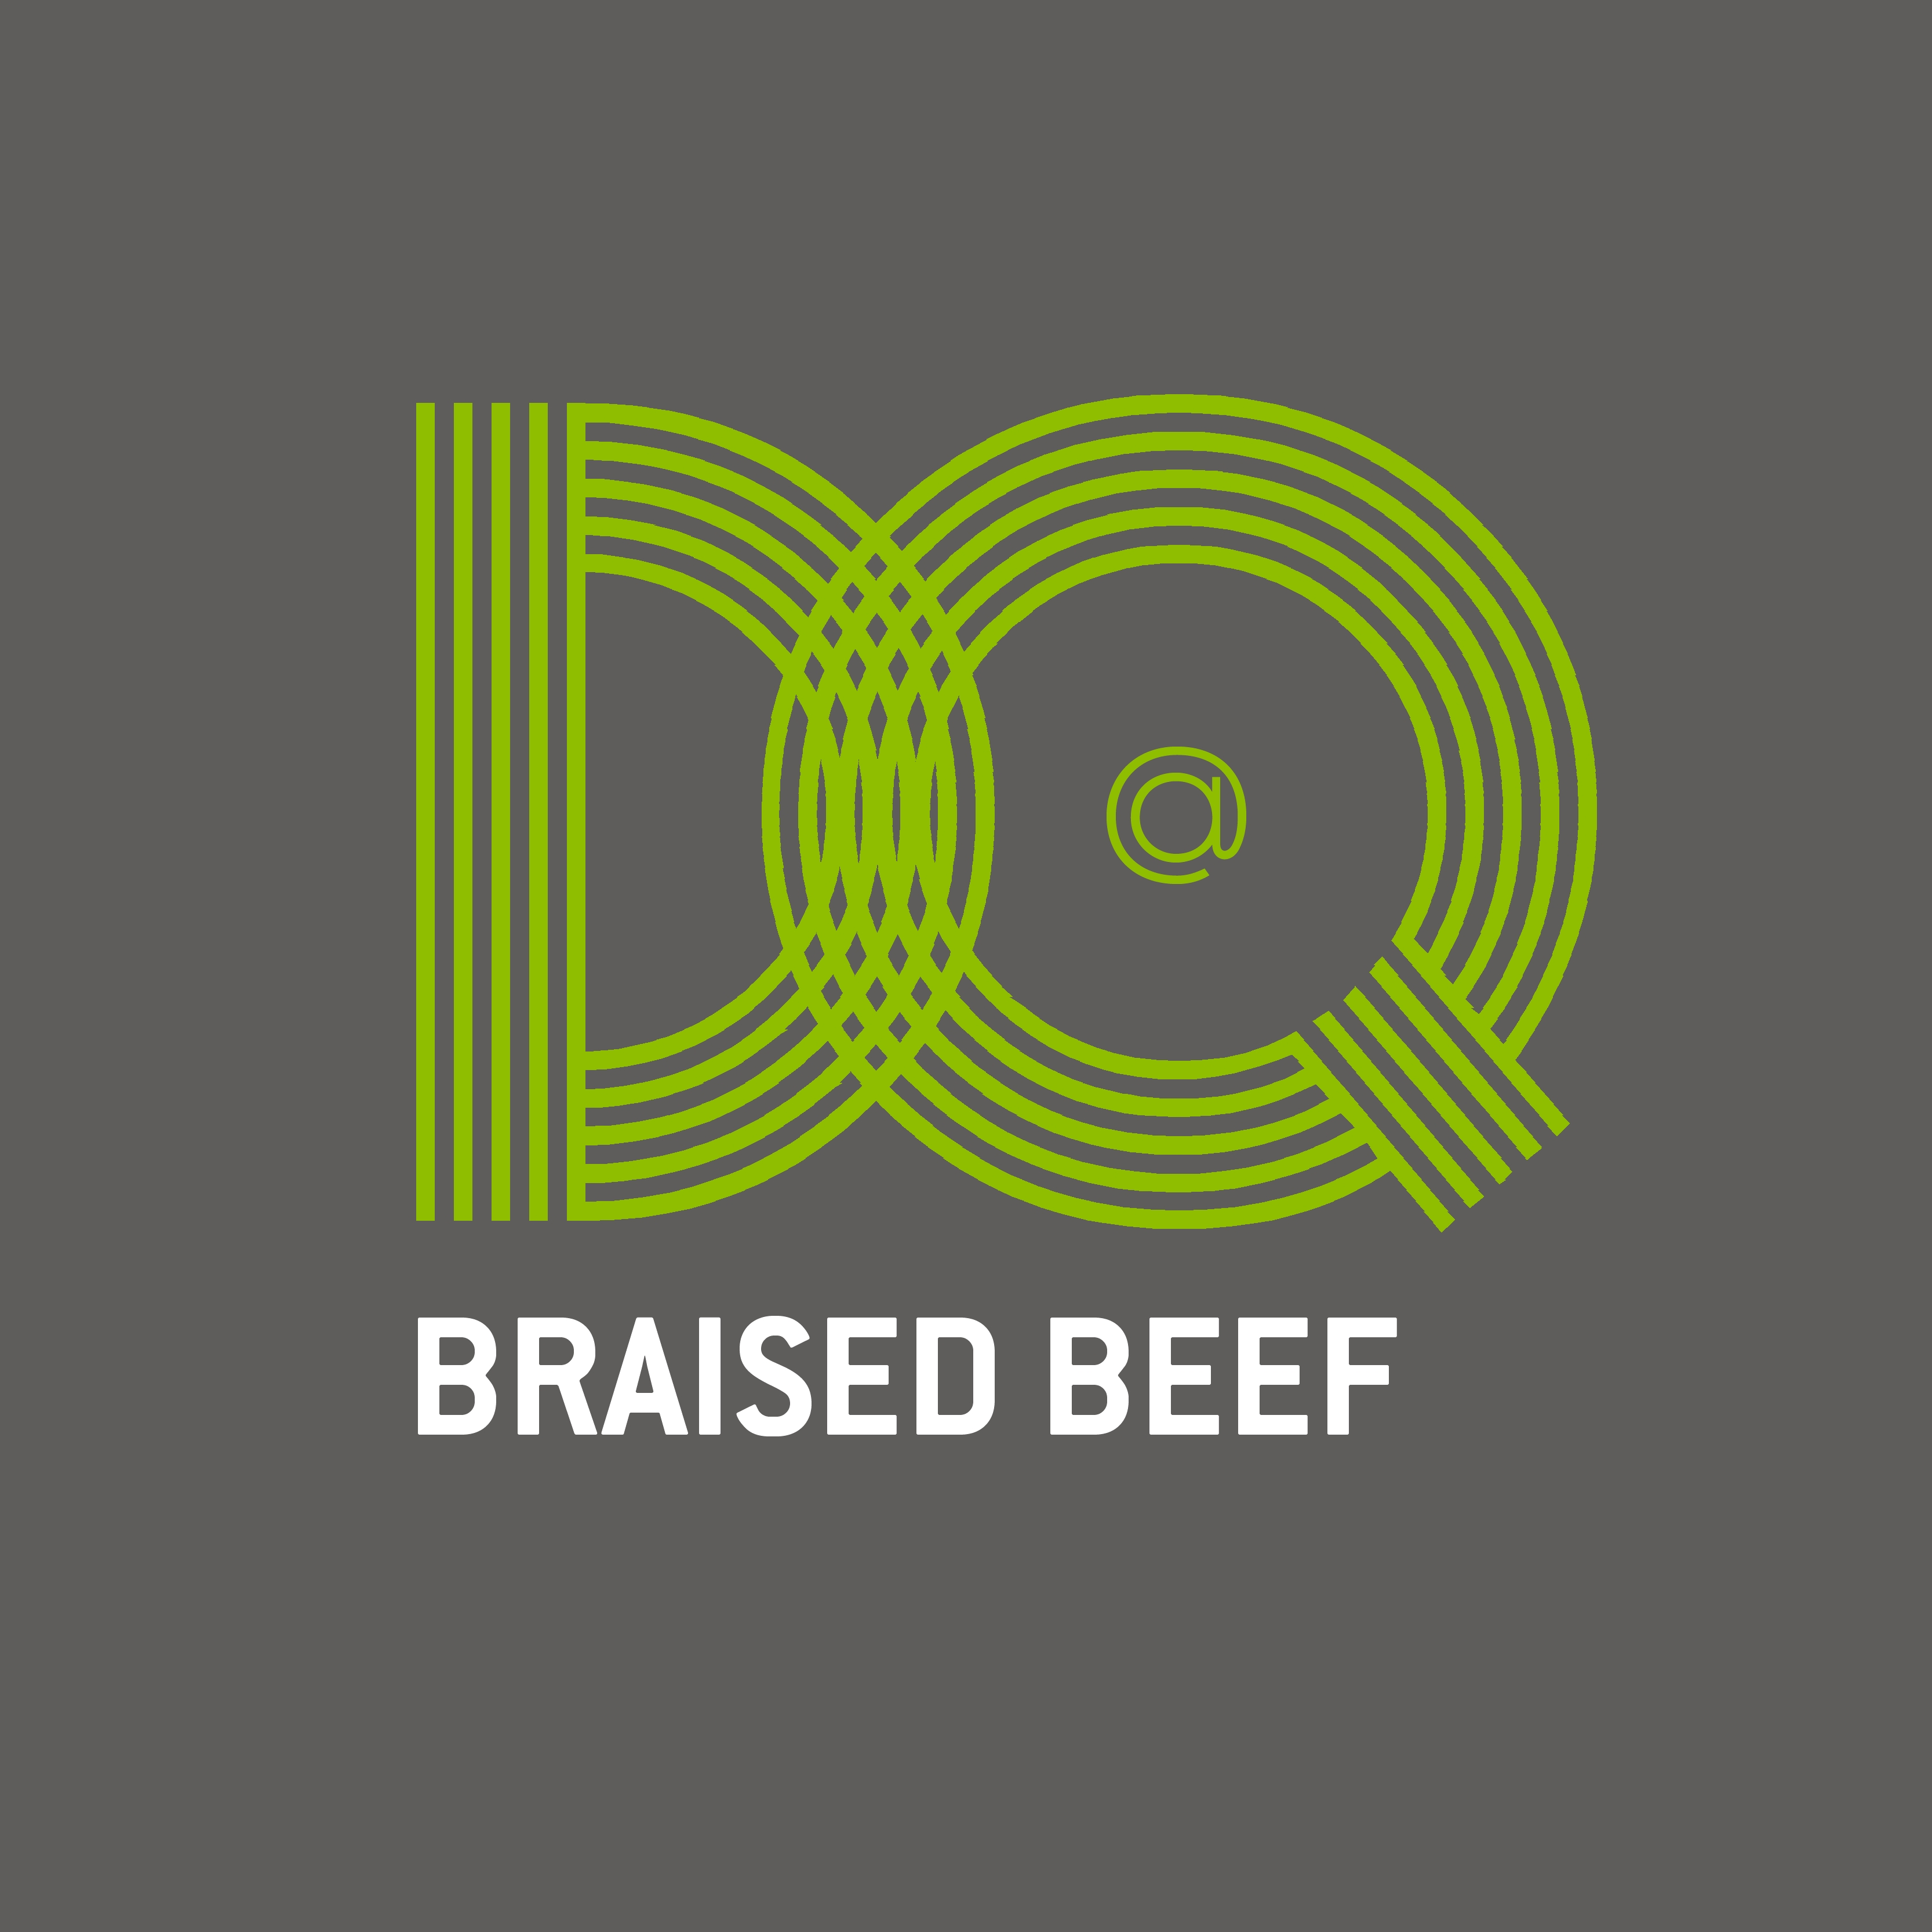 06. DQ - BRAISED BEEF